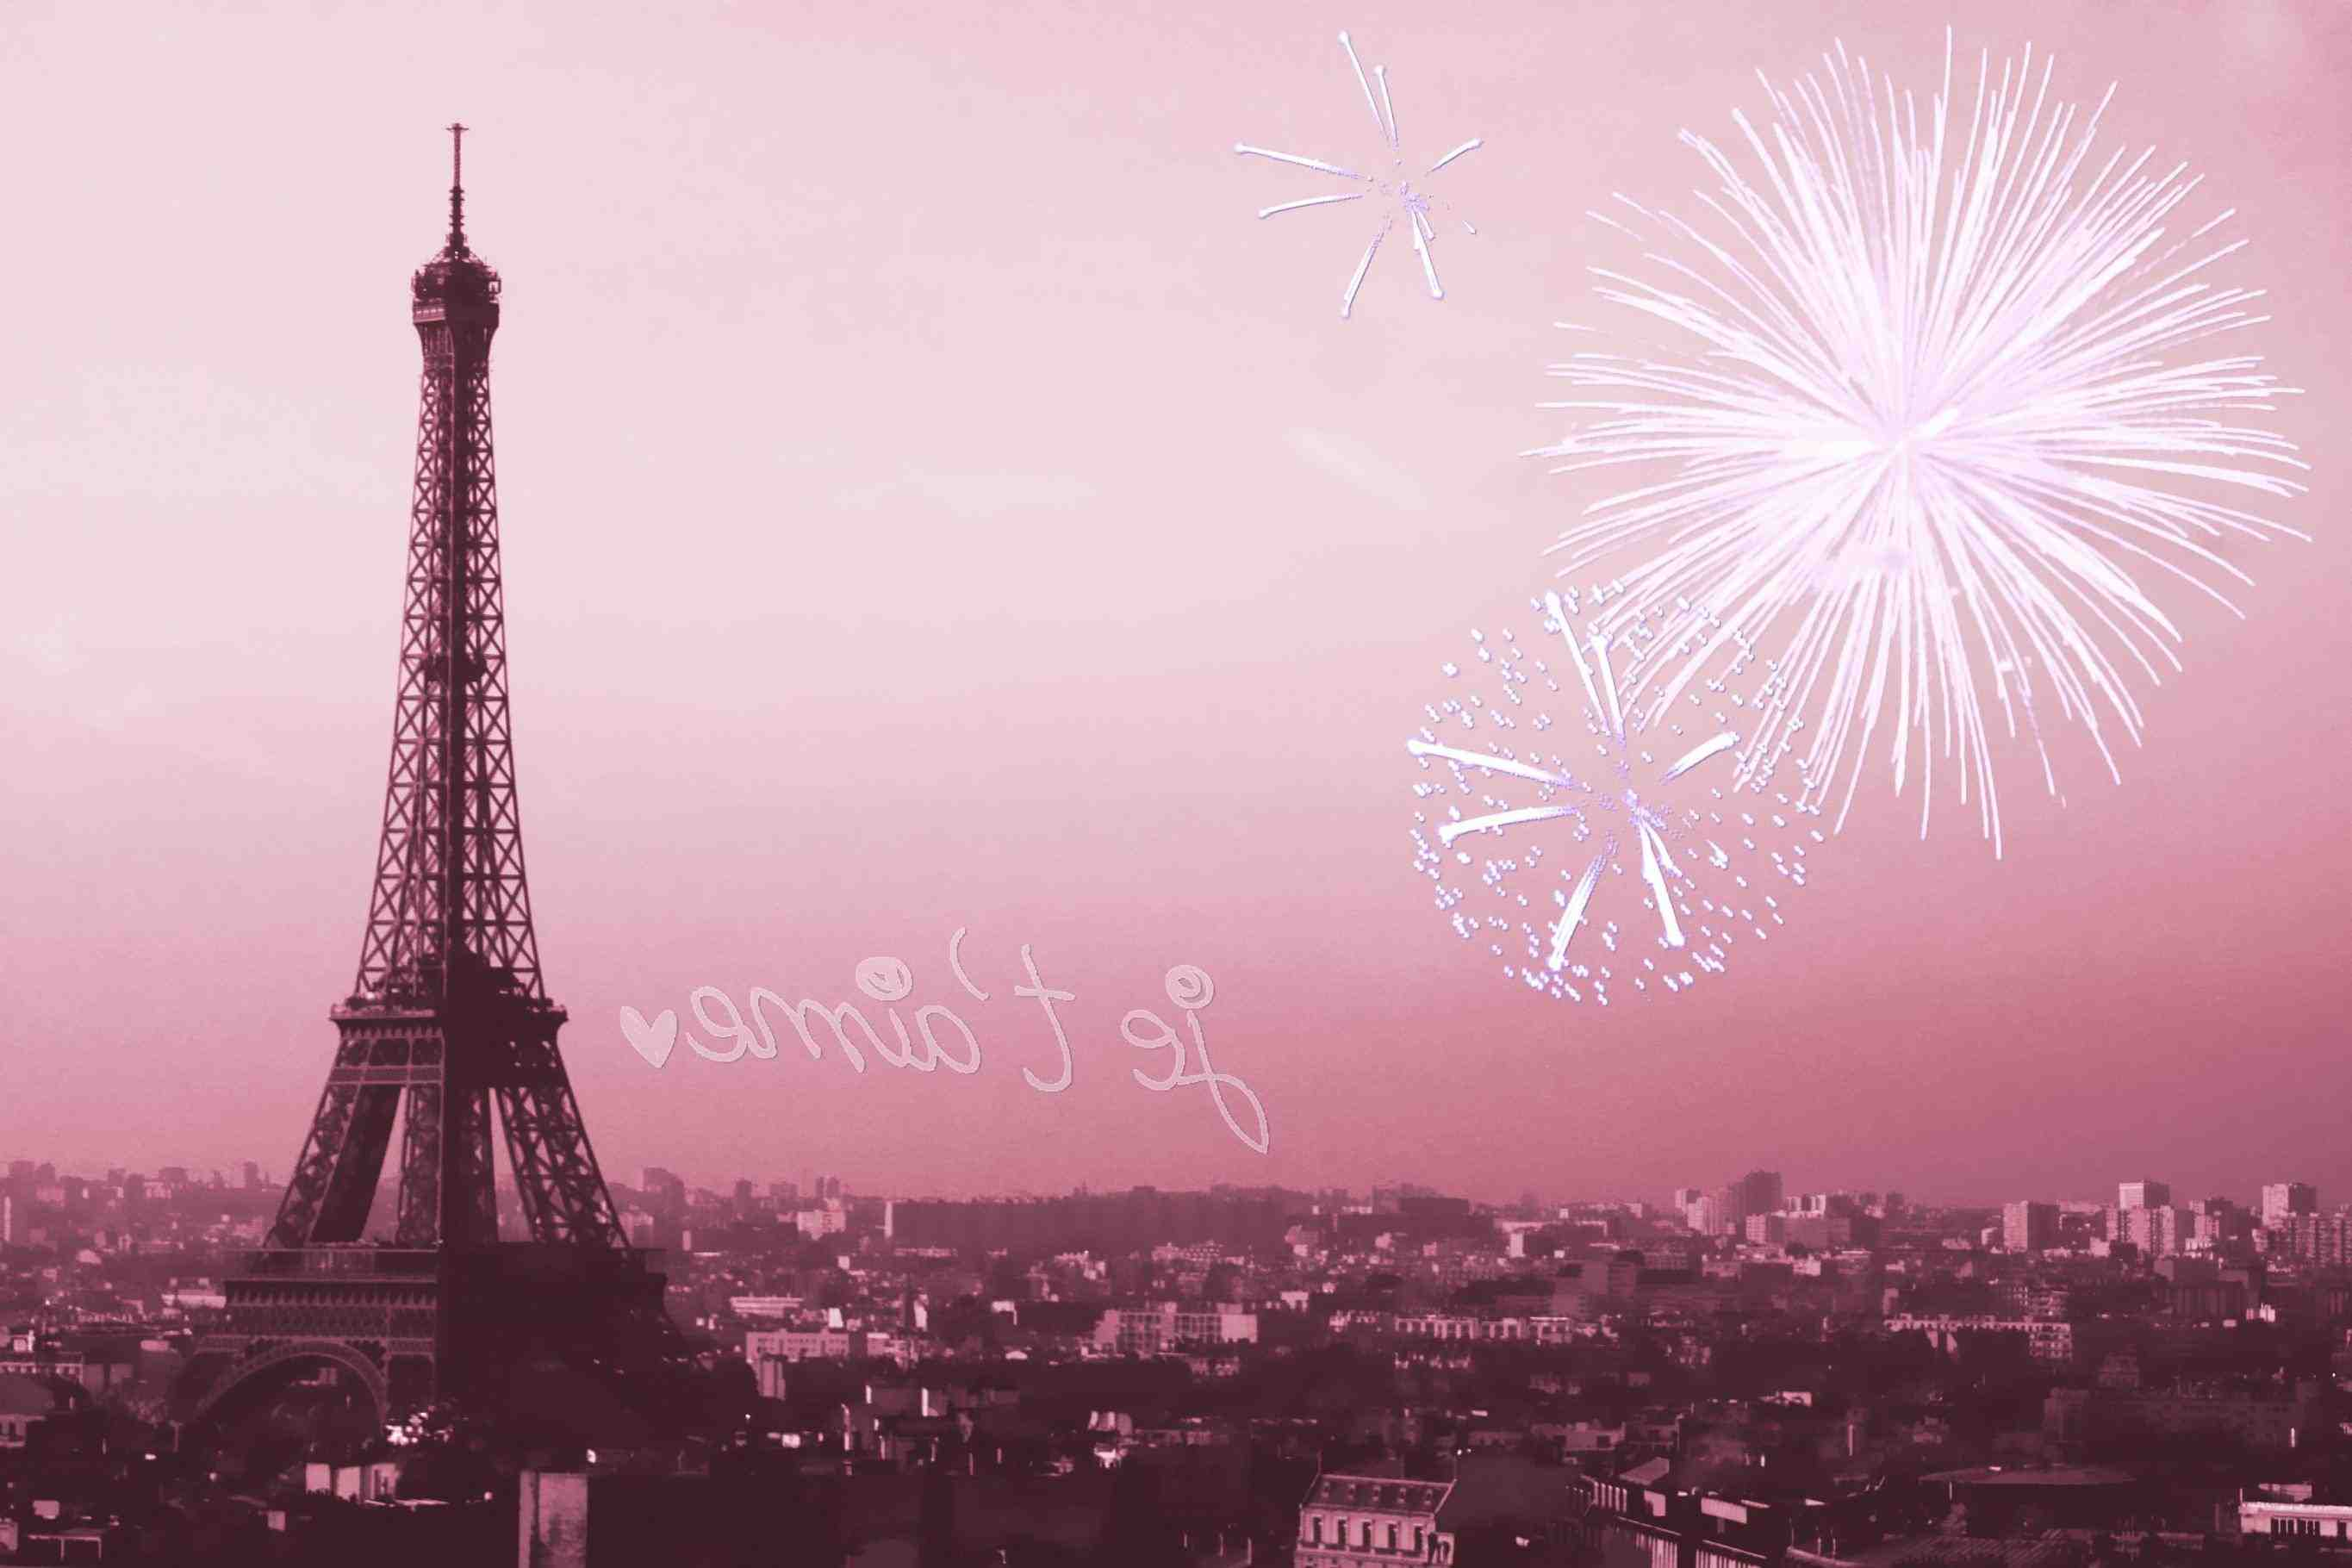 wallpaper paris cute untuk laptop